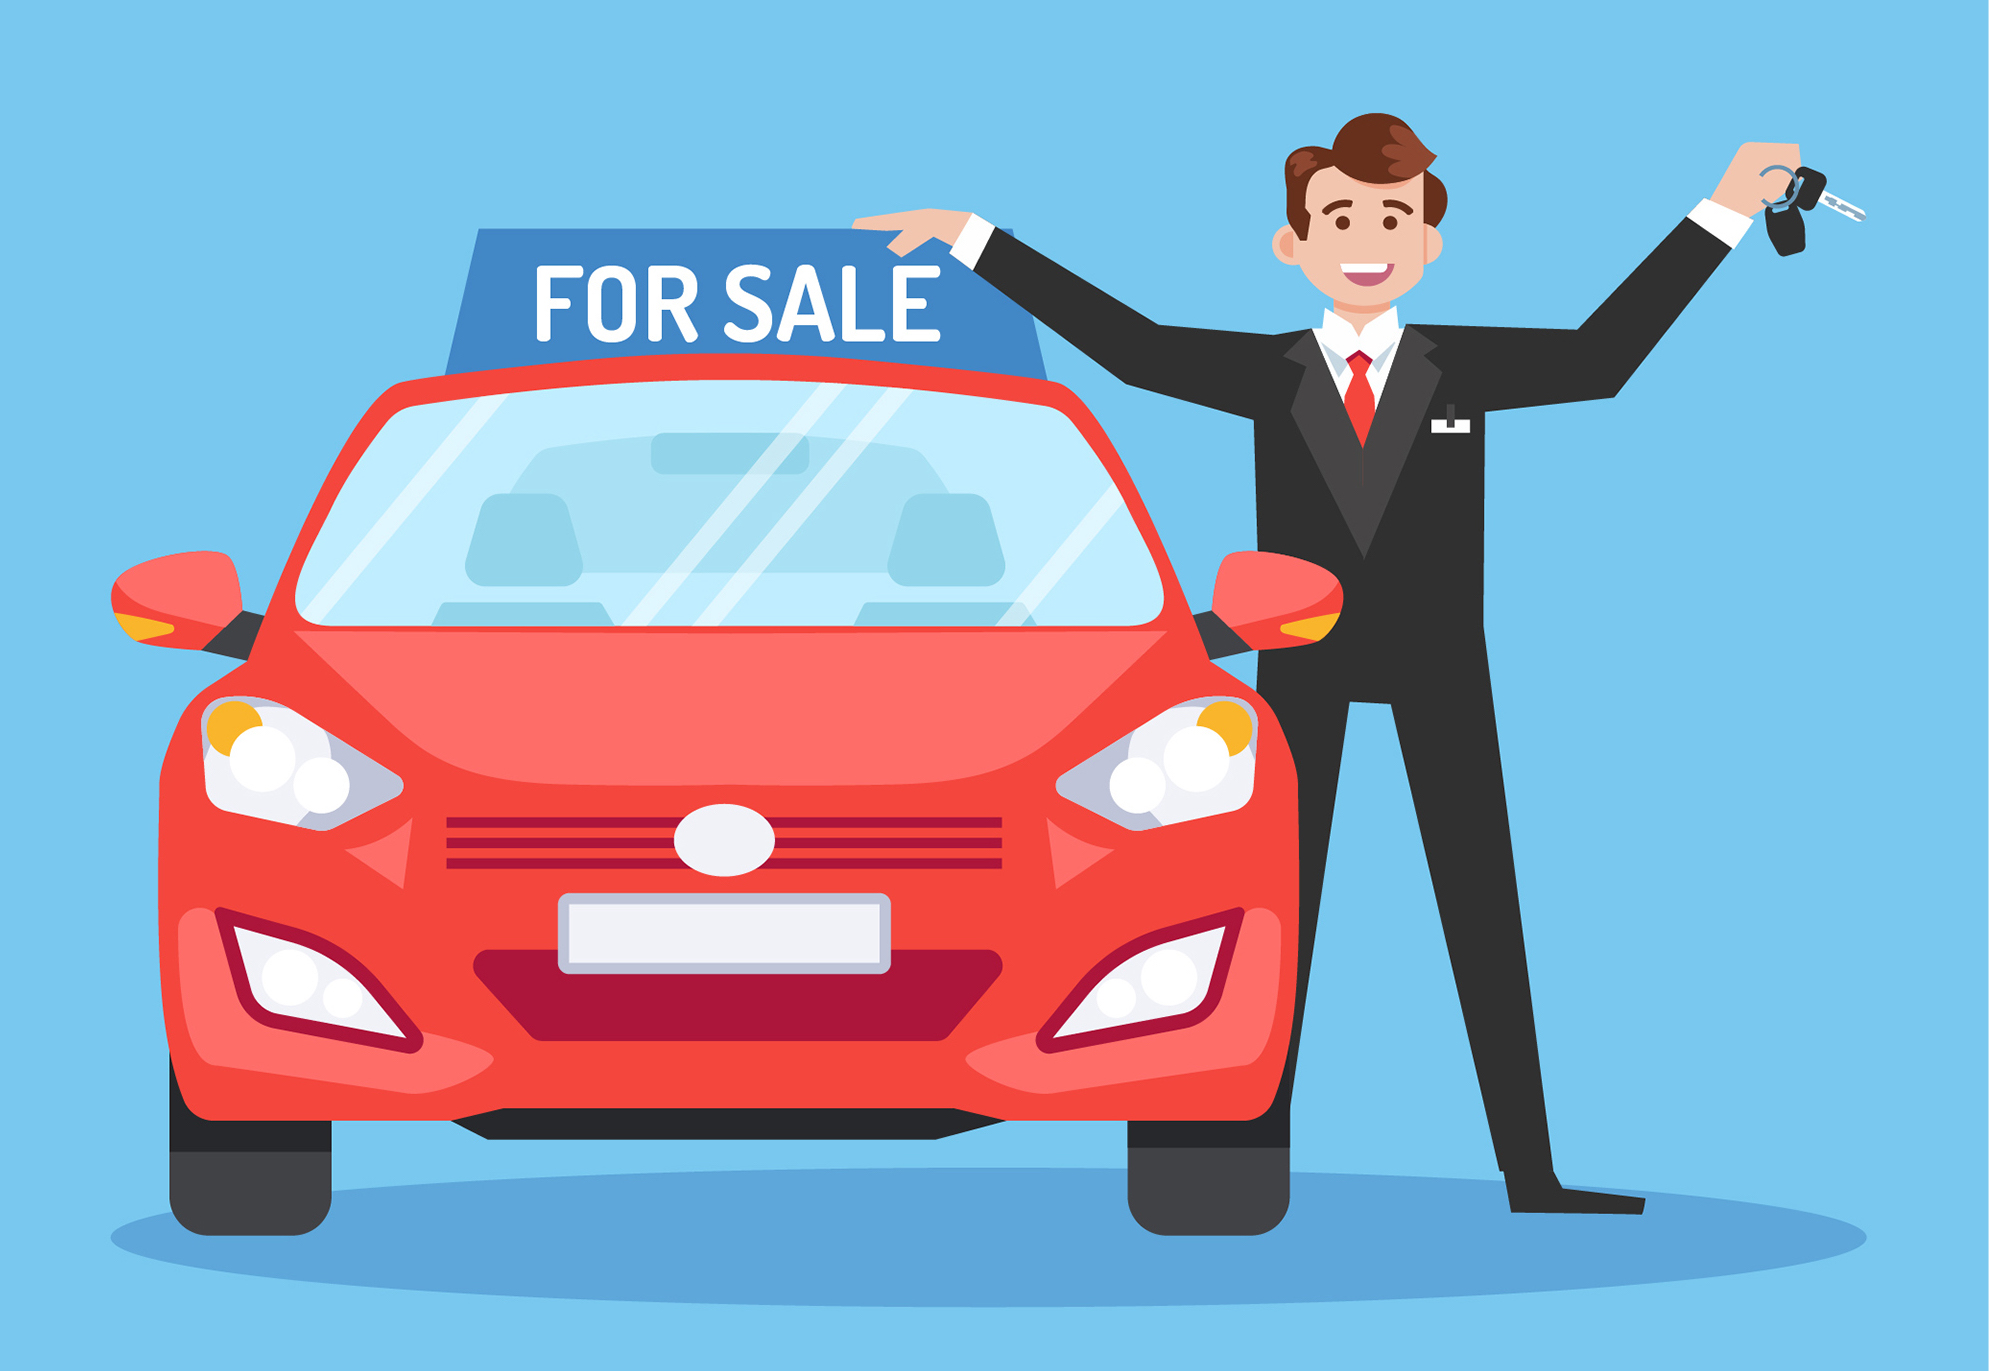 What Do You Need To Sell Your Car For Cash